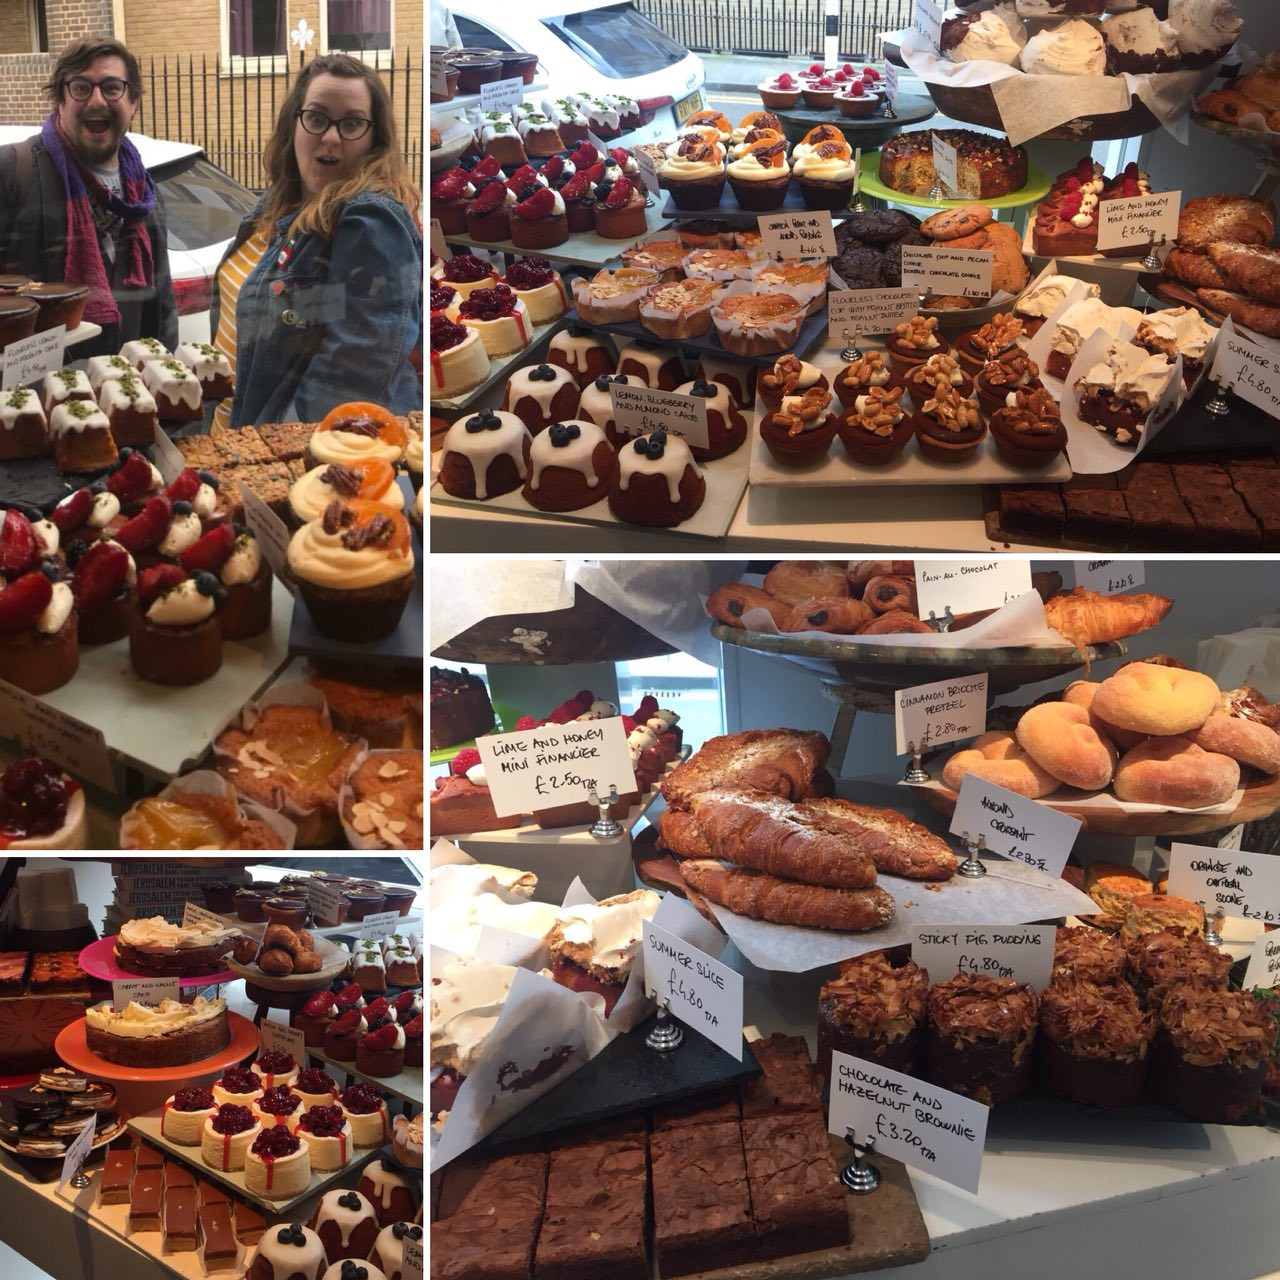 Ottolenghi cakes and pastries are also available to take away!